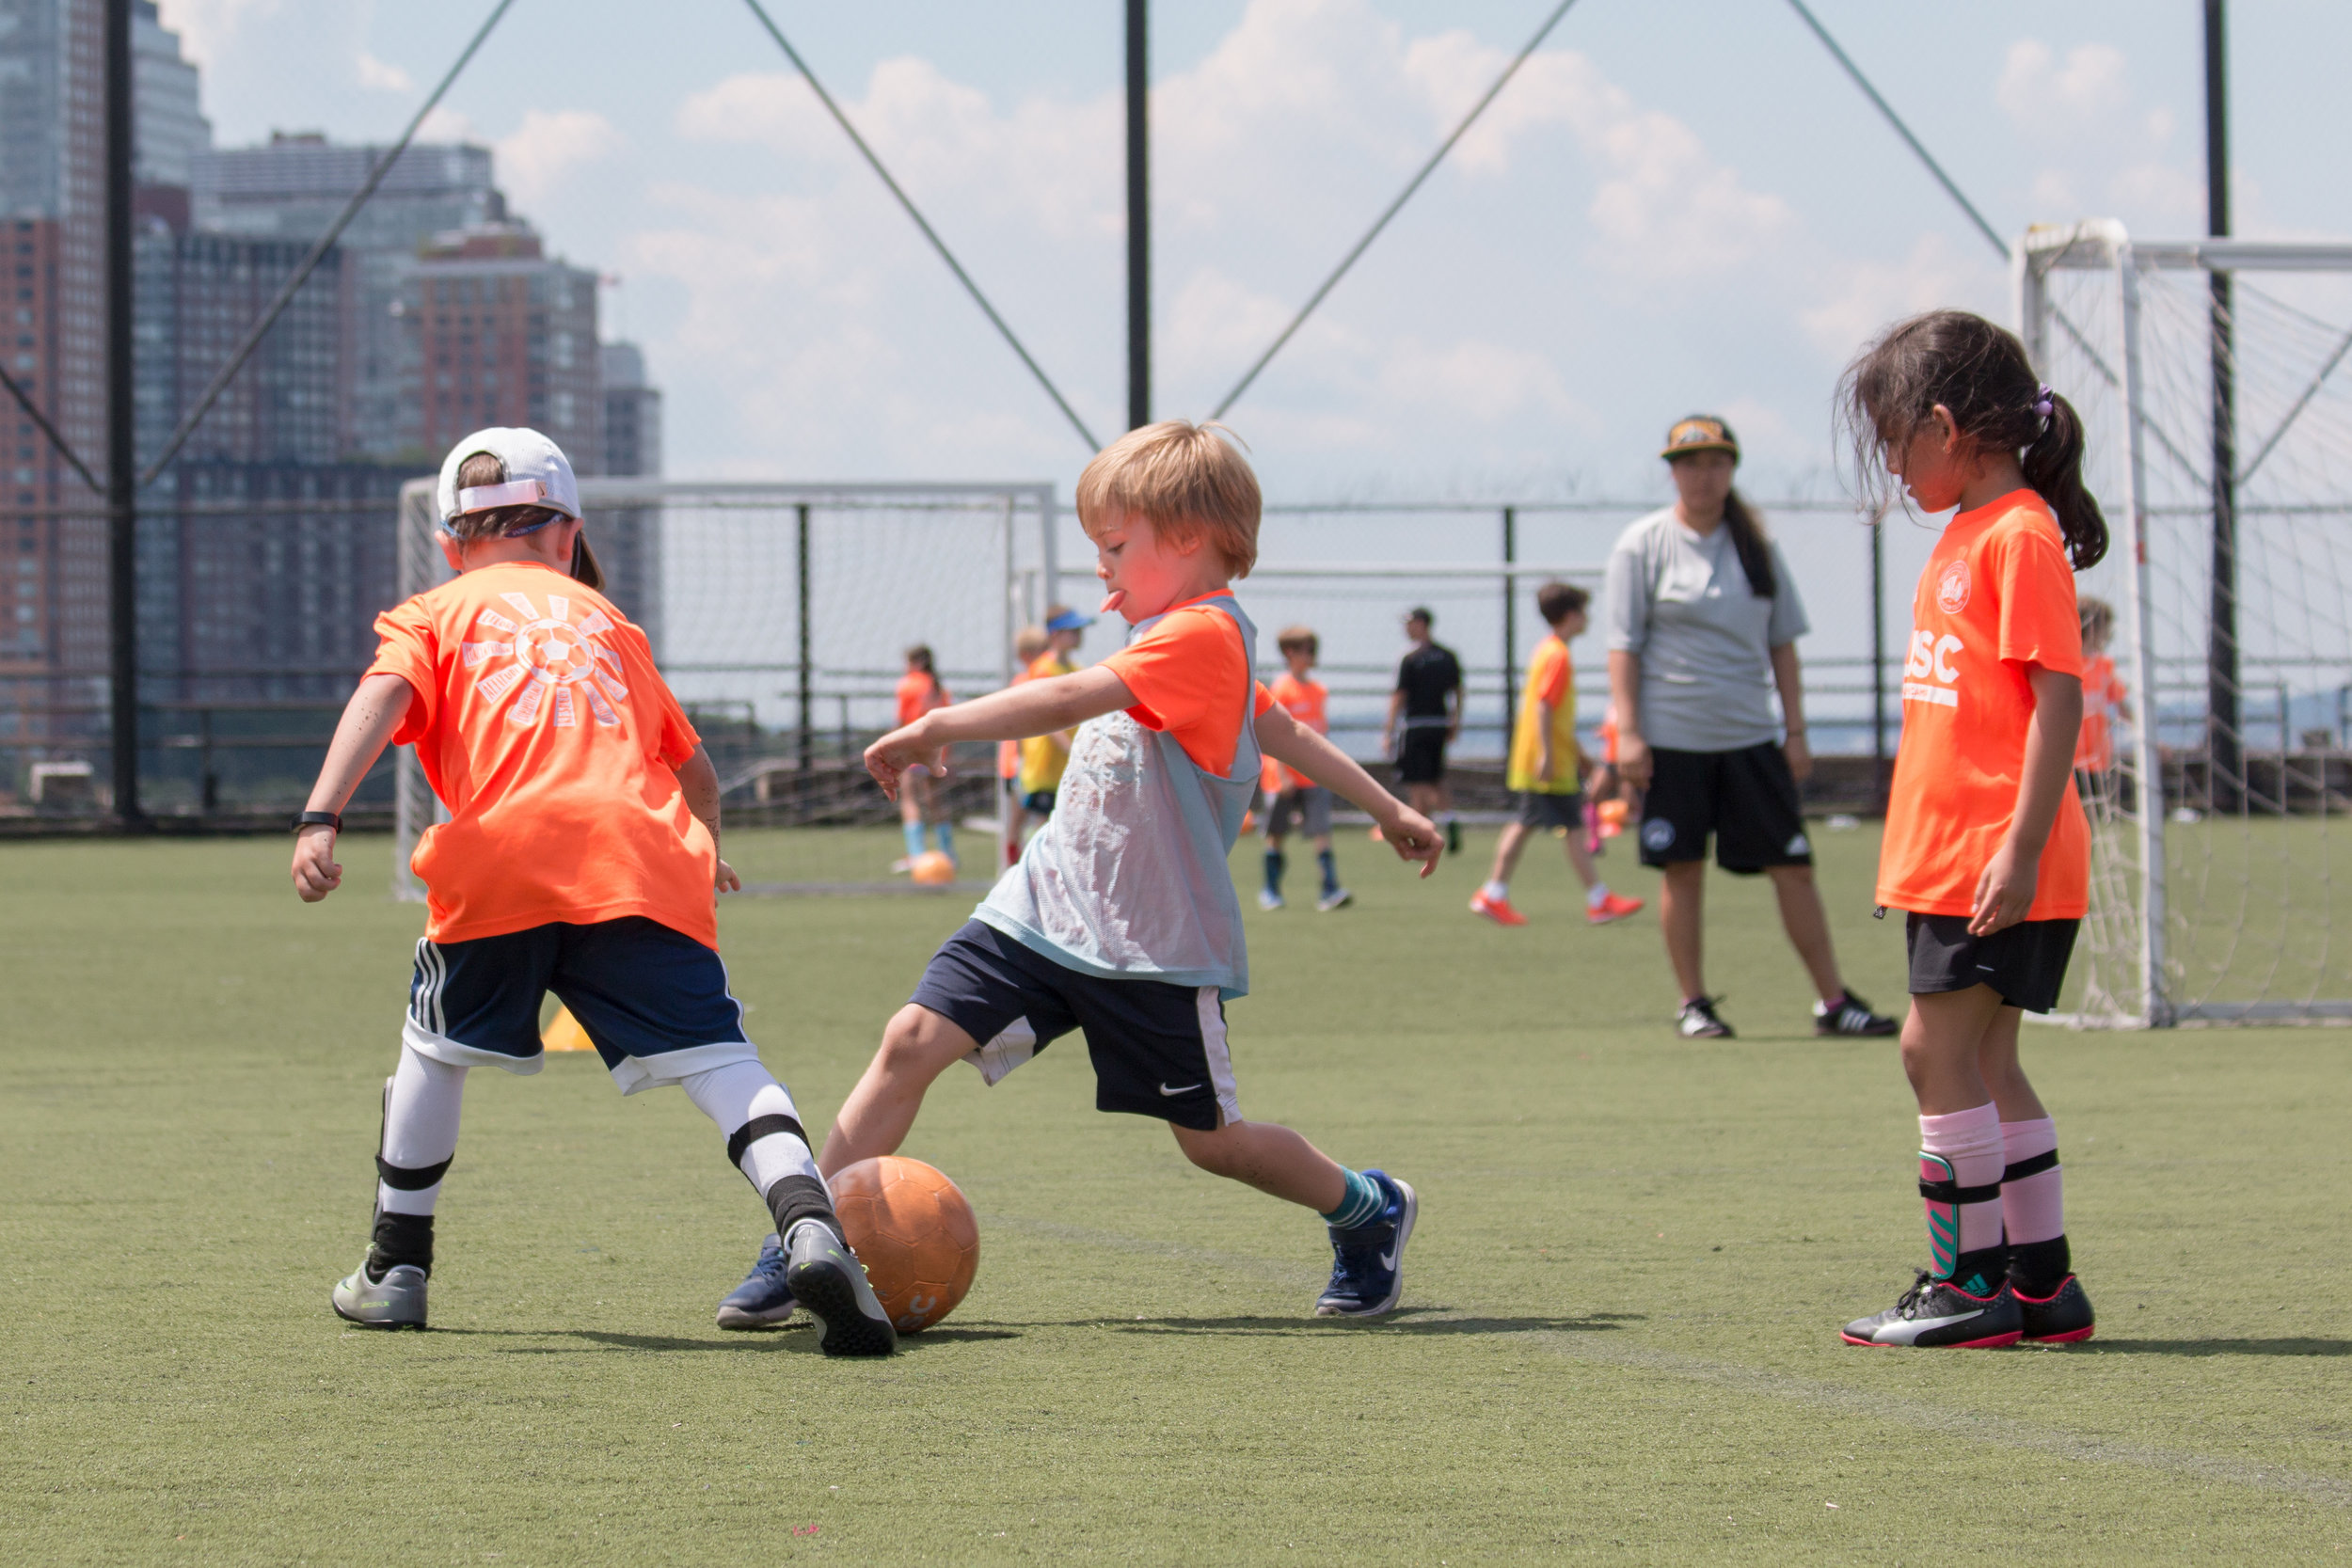 DUSC-downtown-united-soccer-club-youth-new-york-city-summer-camp–17–05.jpg